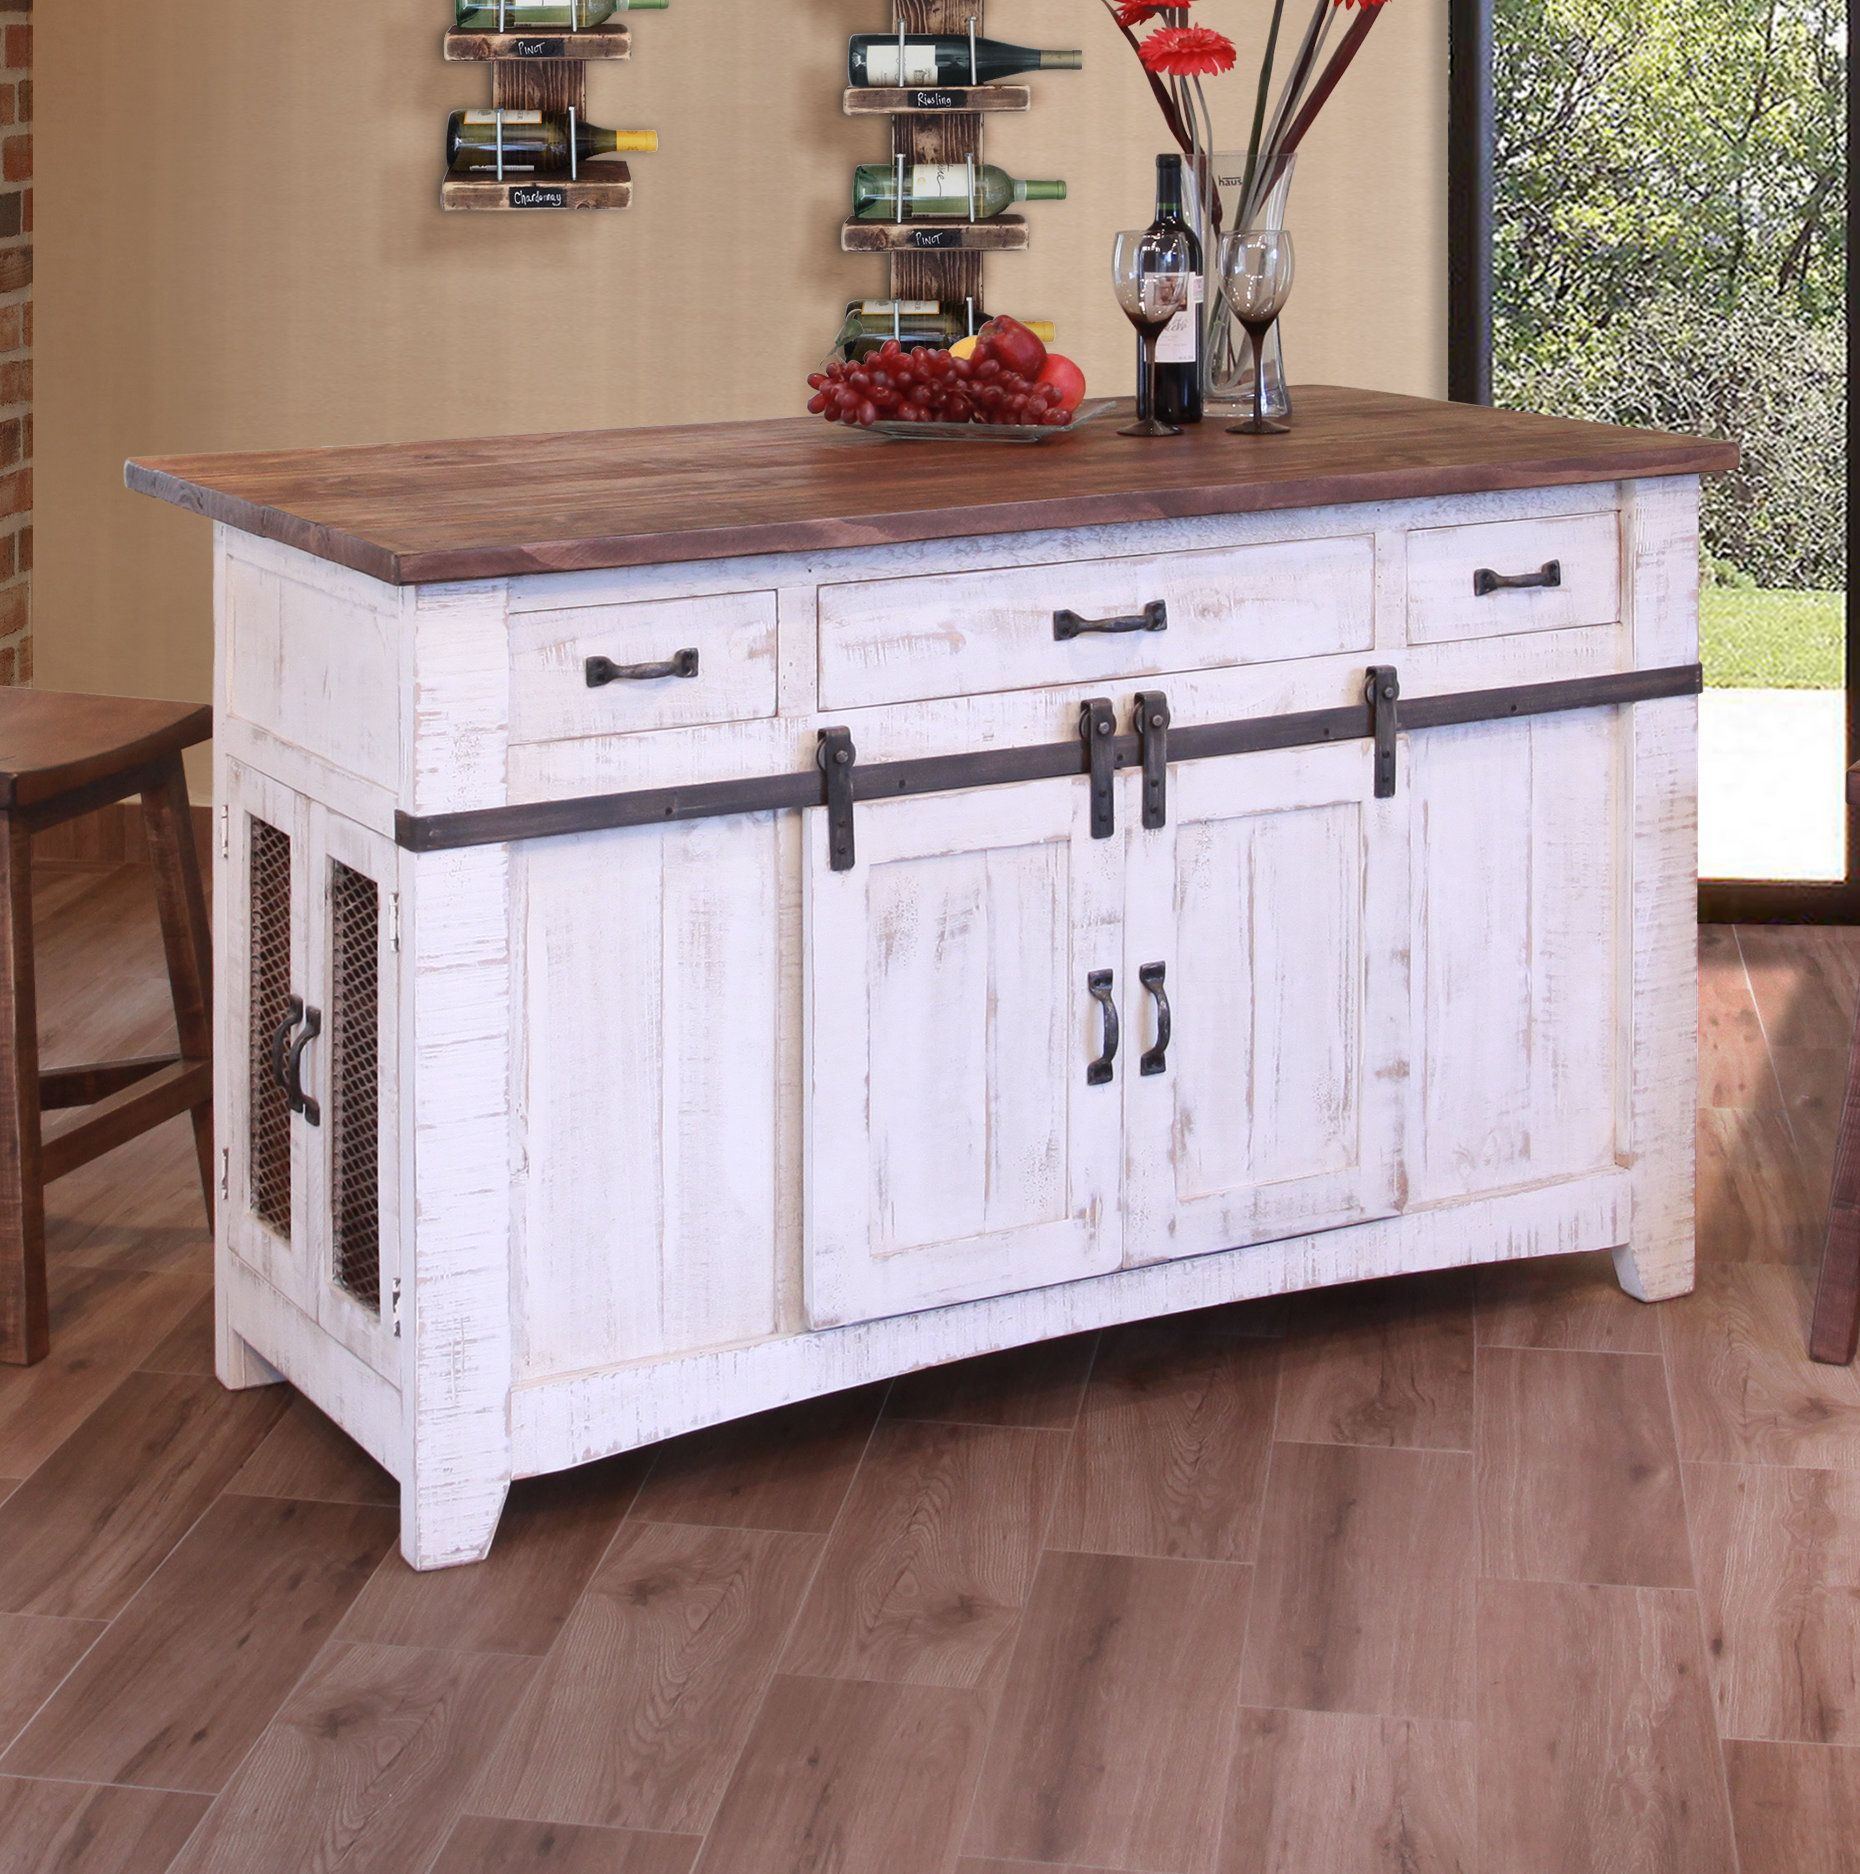 Coralie Kitchen Island Kitchen Remodel Small Home Decor Kitchen Kitchen Design Small